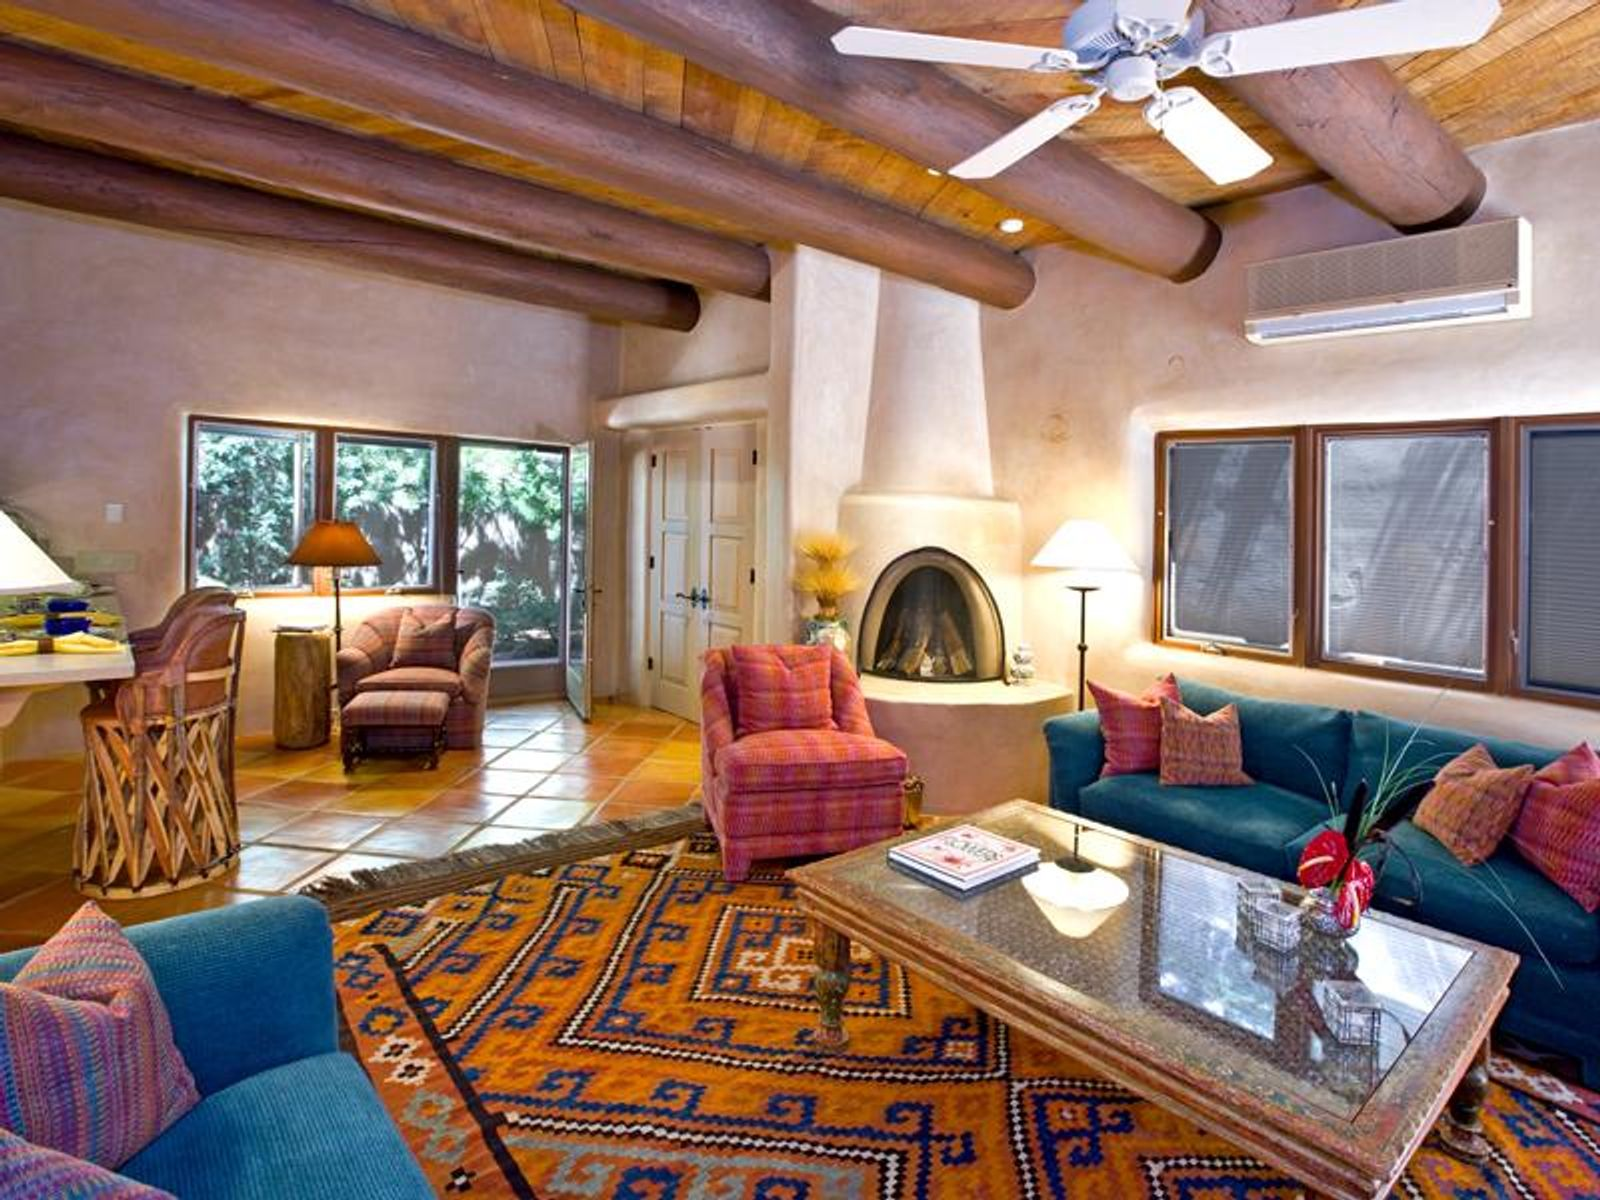 Southwestern in style, the enchanting living area